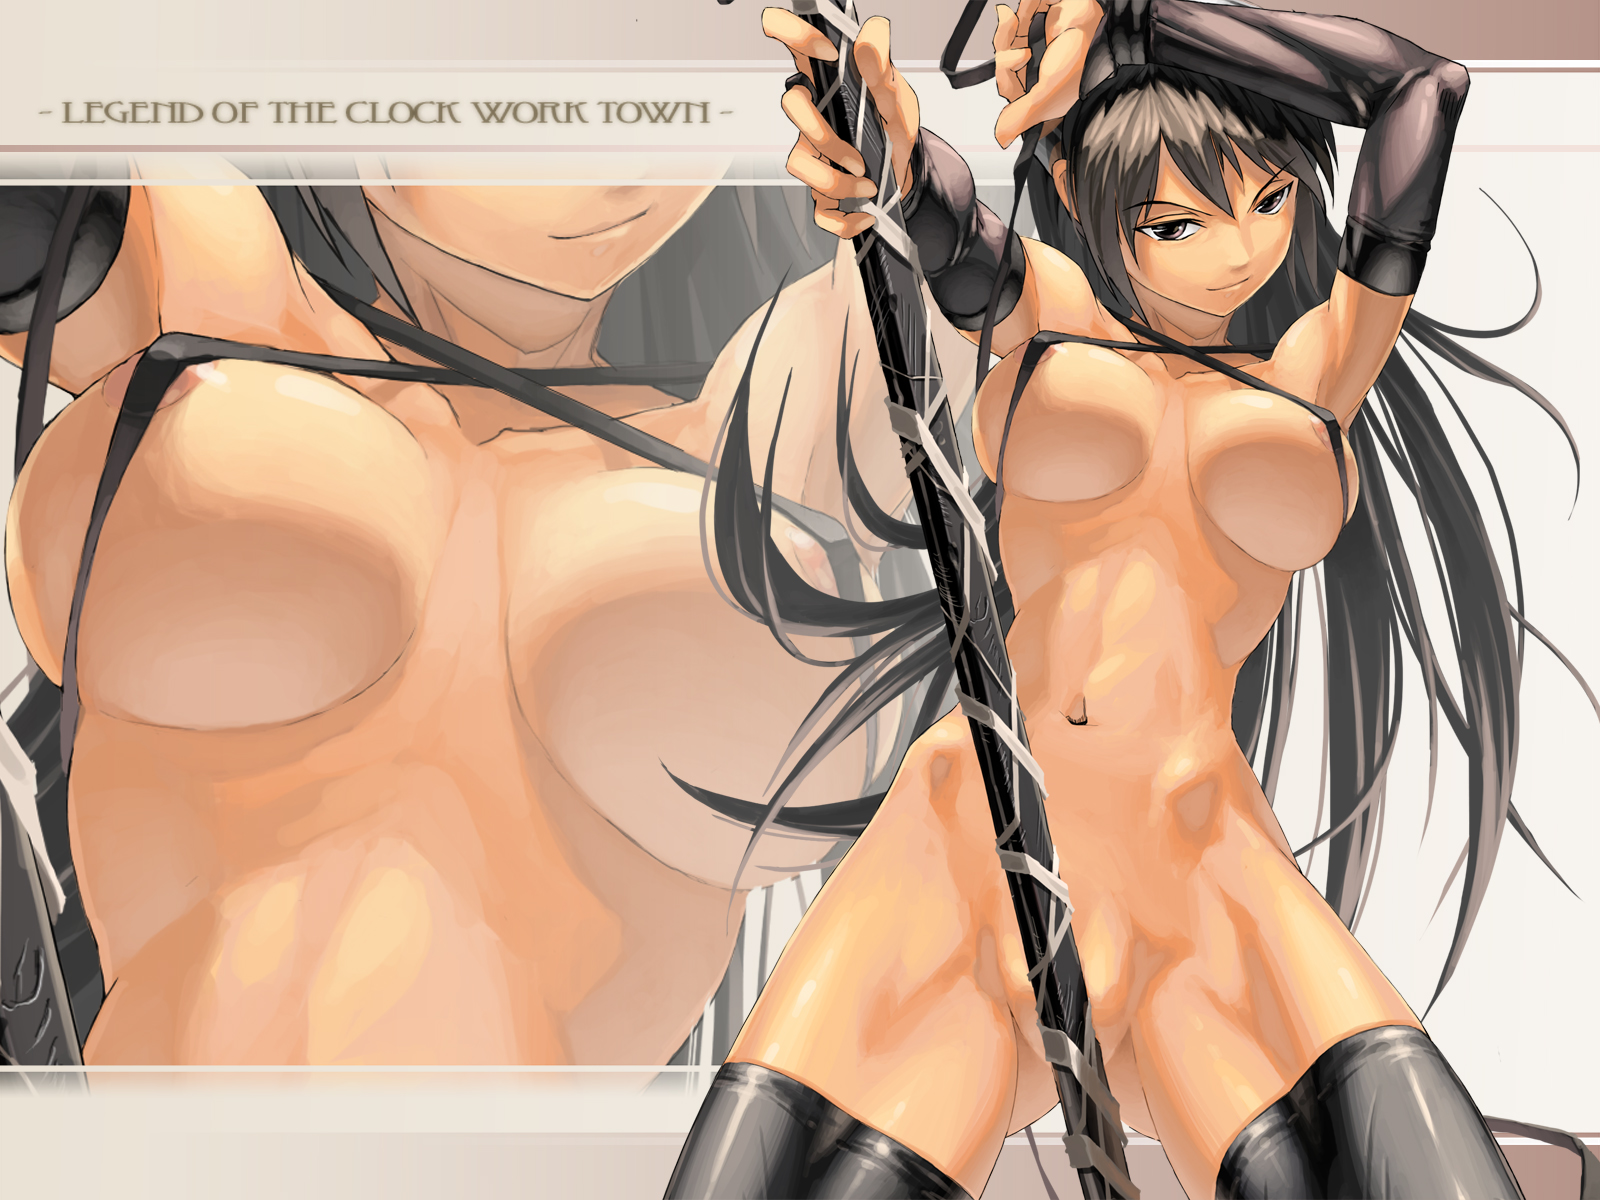 Hentai sexy female warrior pictures hentai image